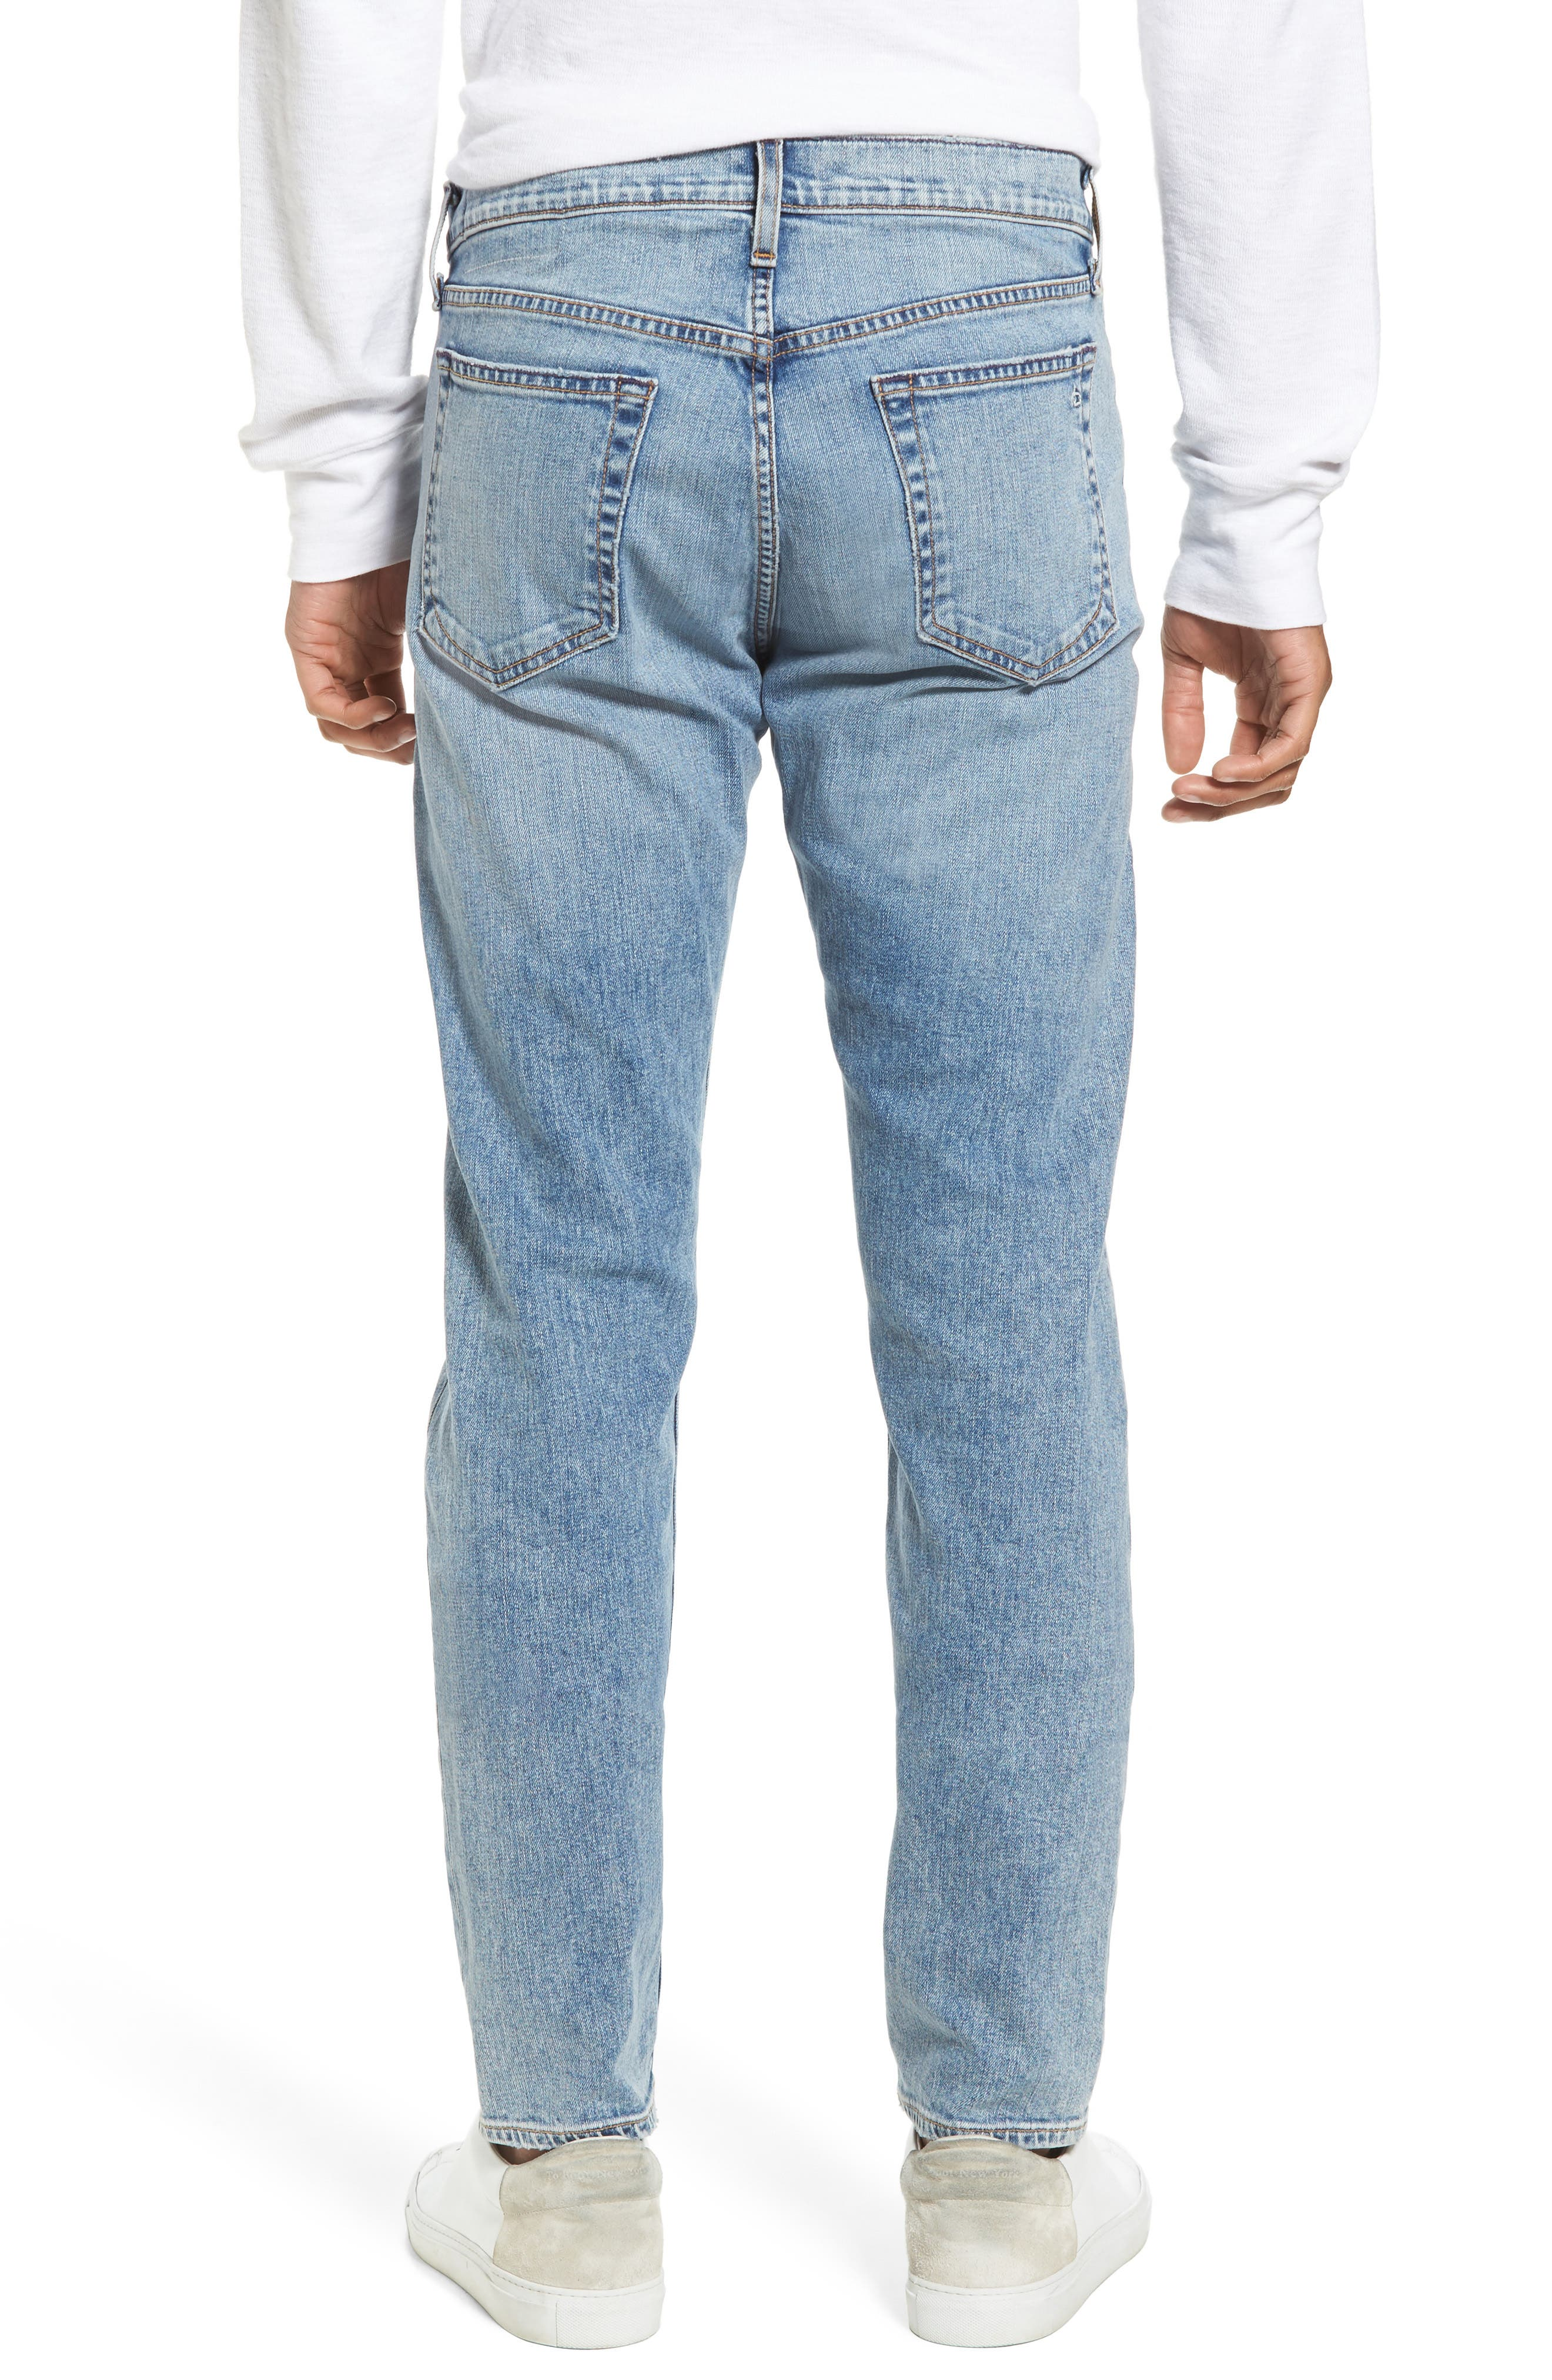 Fit 1 Skinny Fit Jeans,                             Alternate thumbnail 2, color,                             450